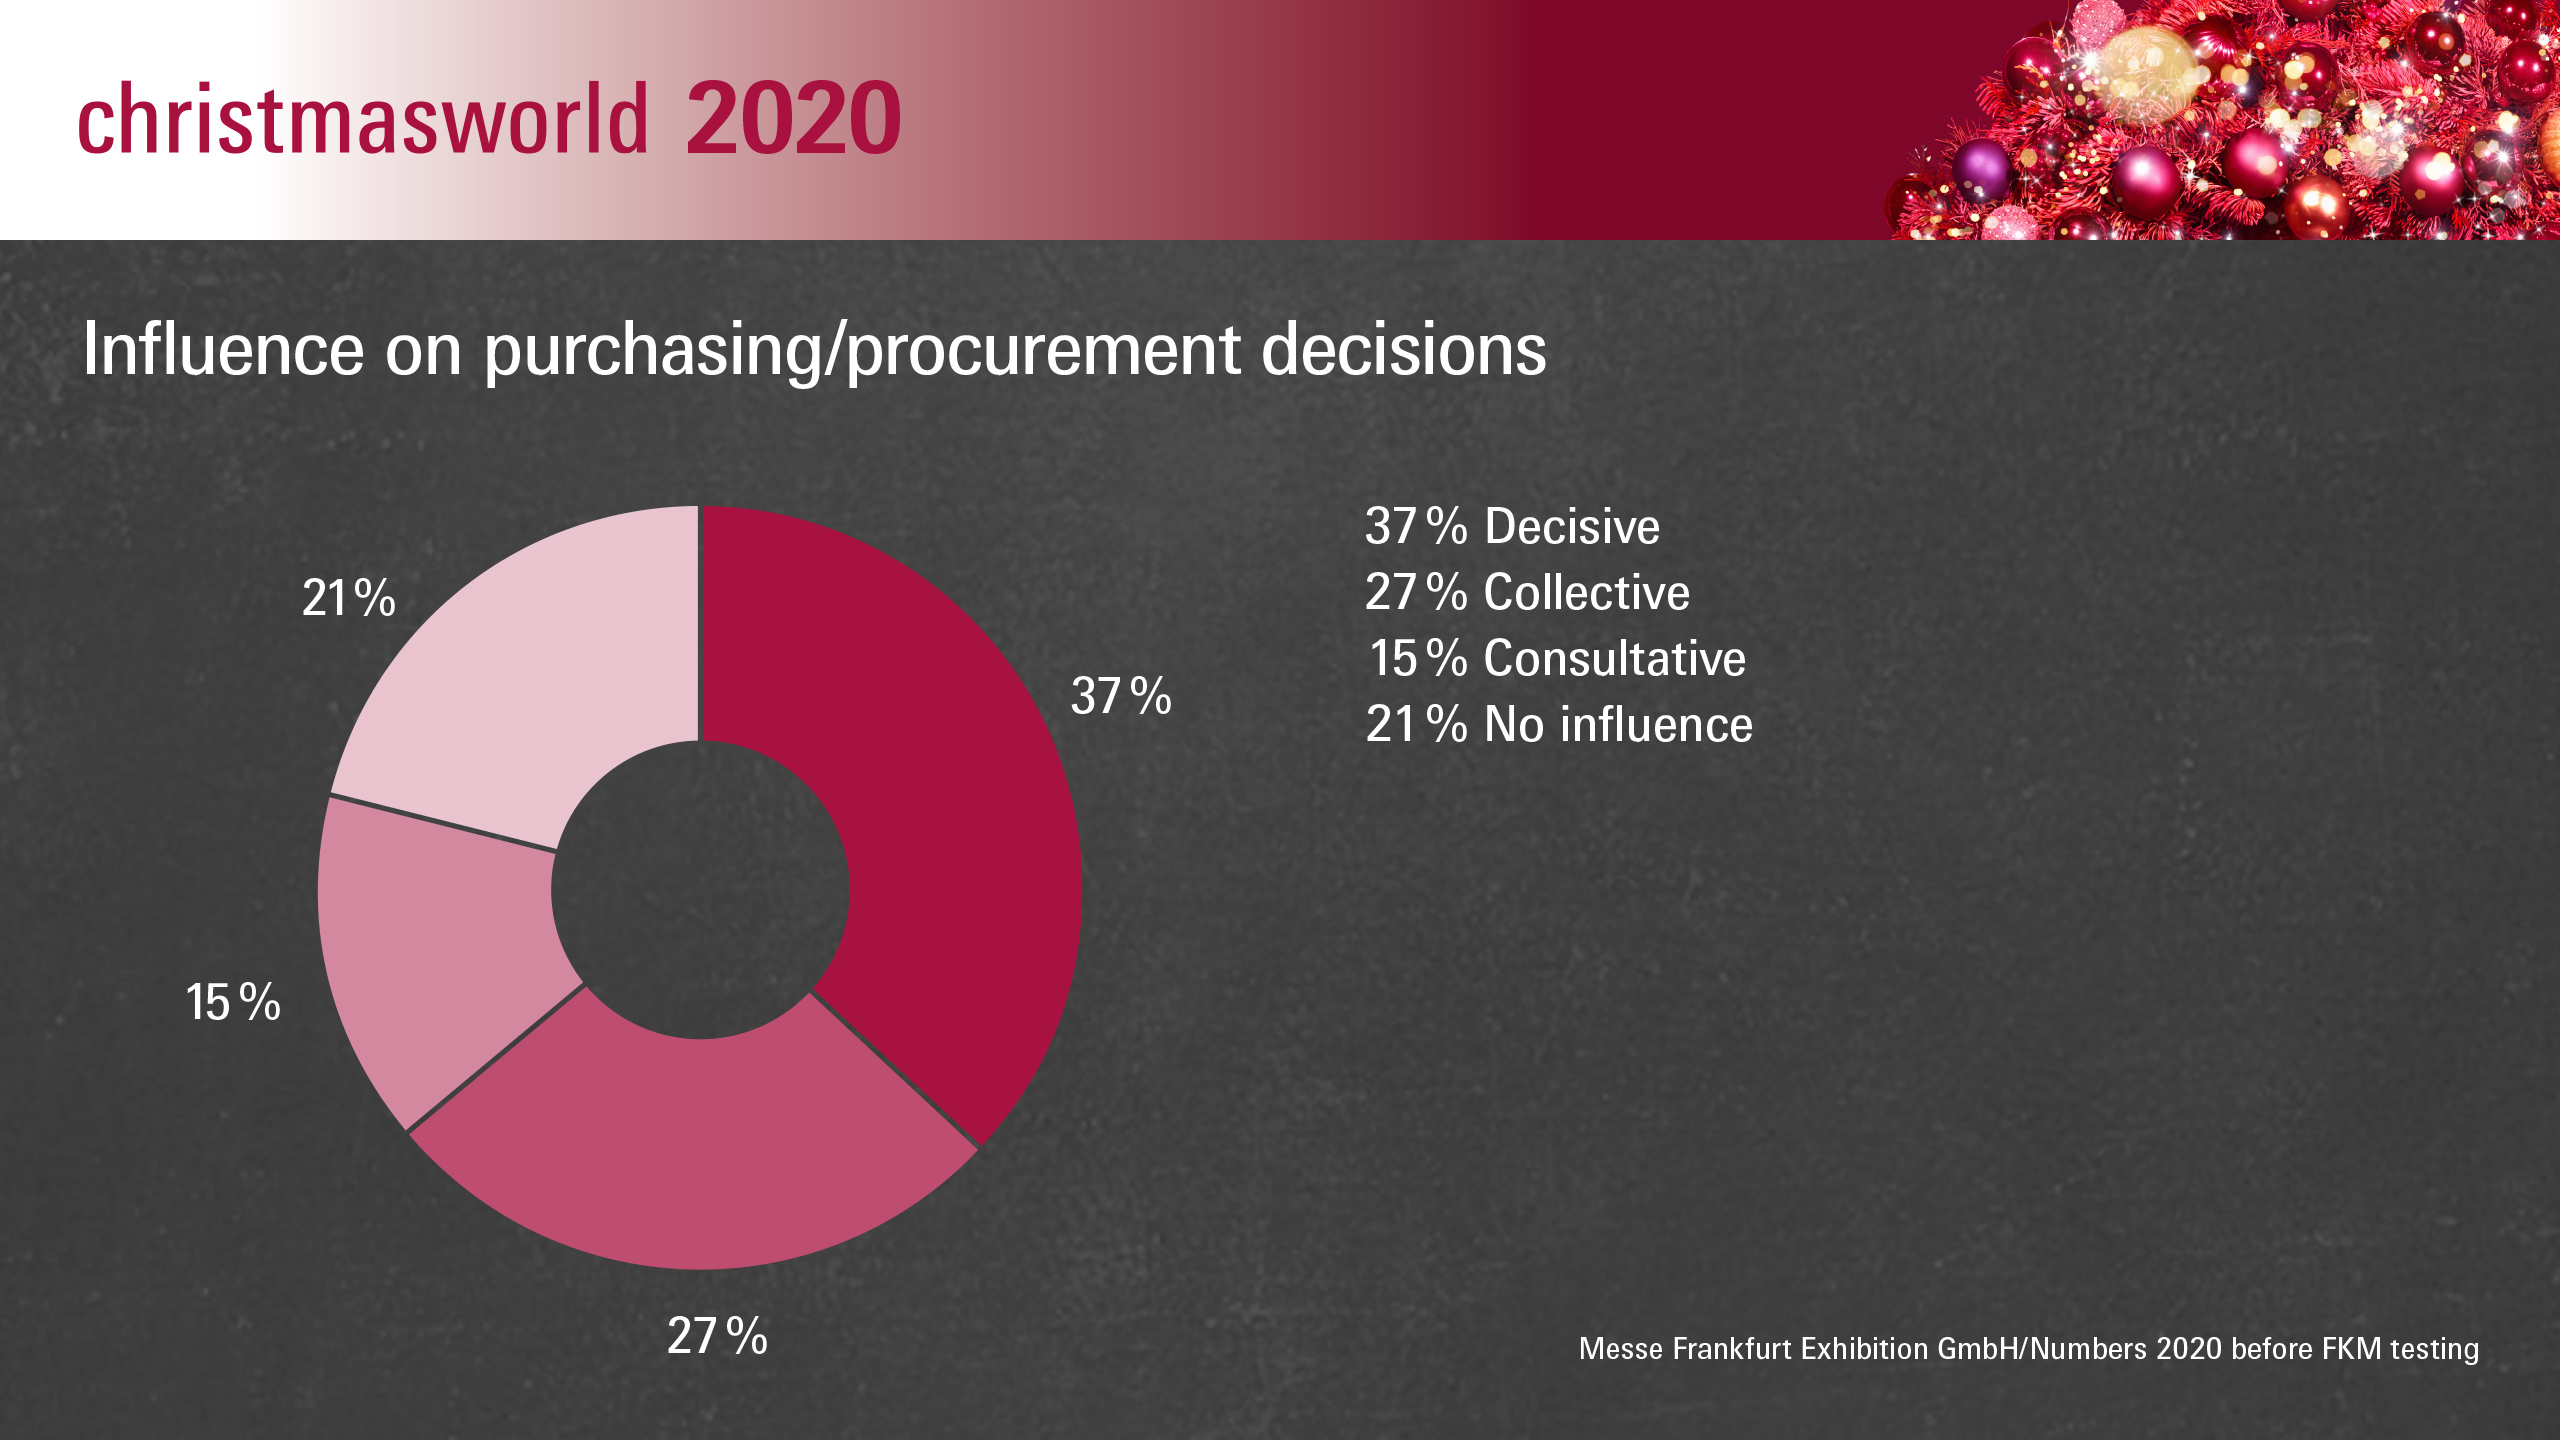 Christmasworld 2020: Influence on purchasing/procurement decisions